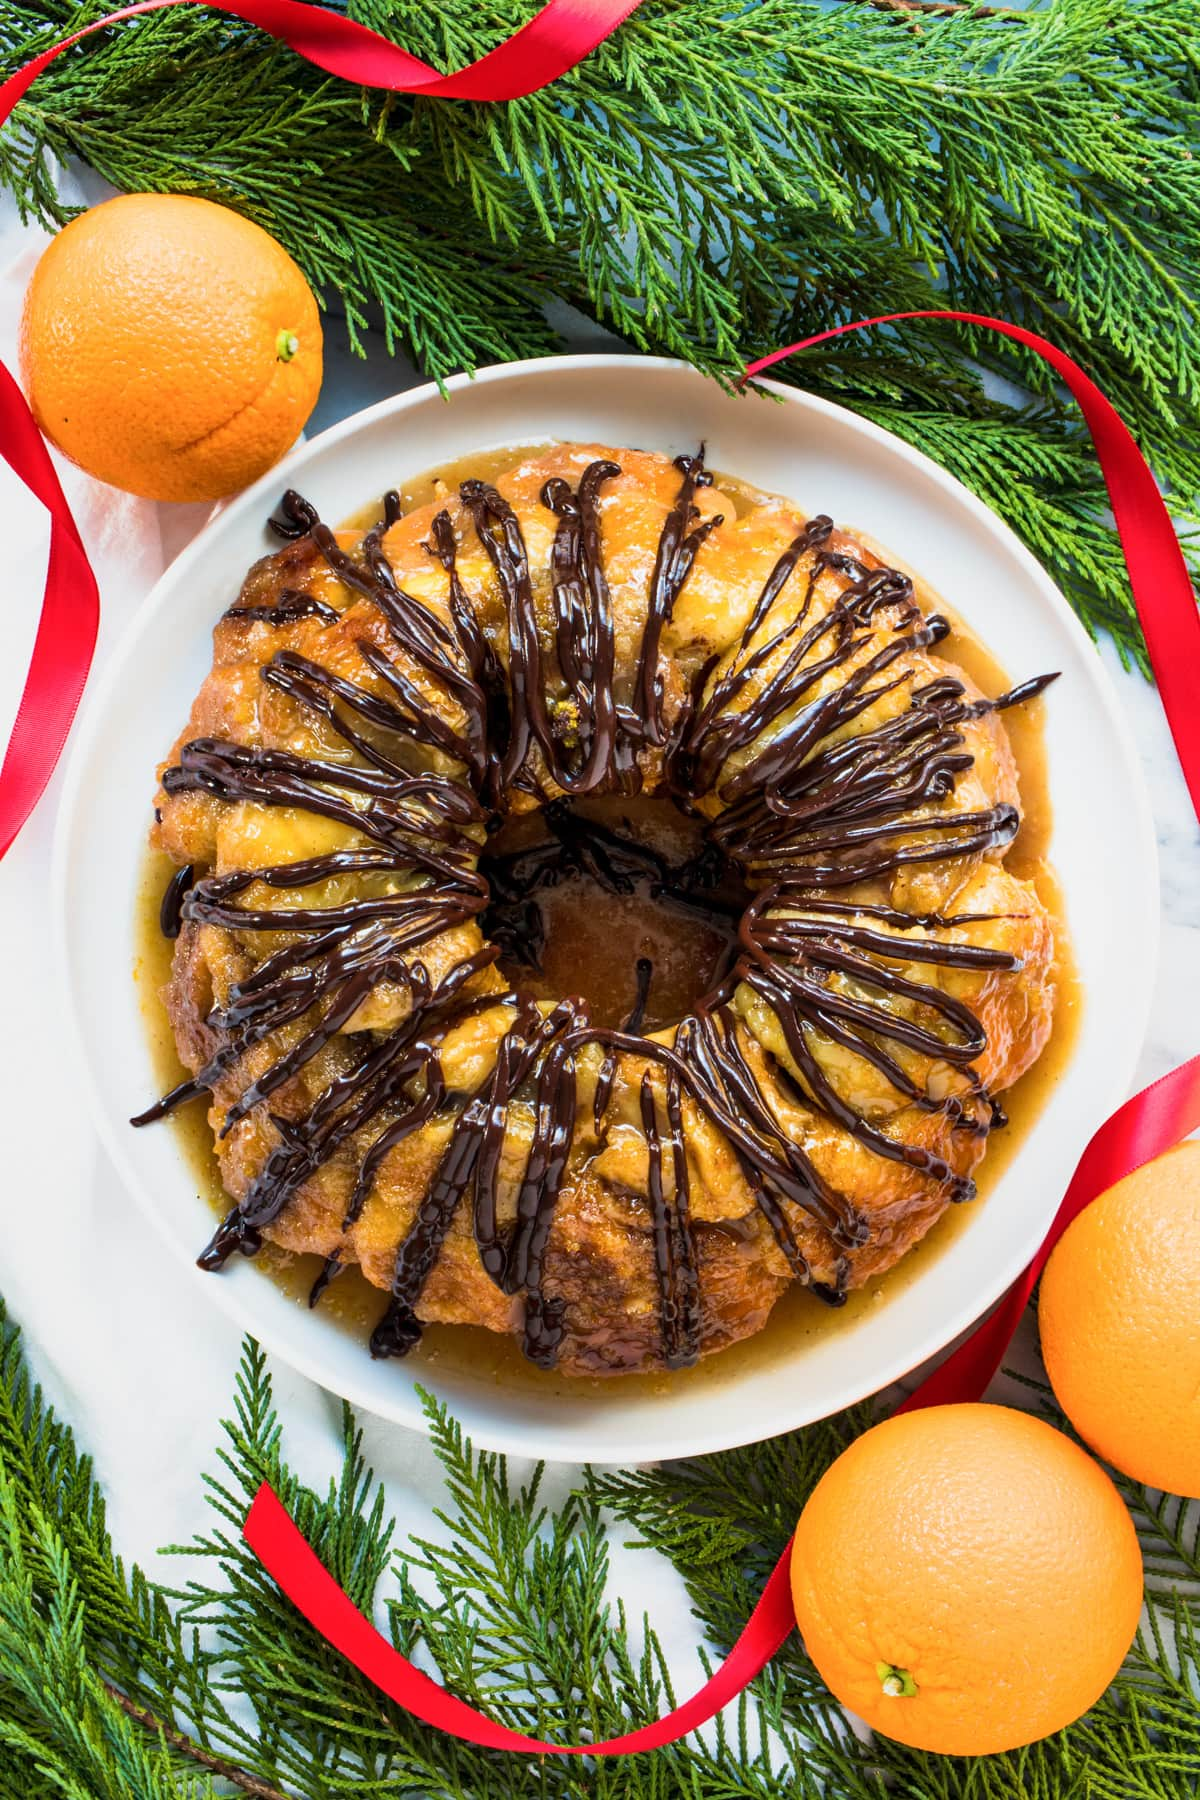 doesn't it look delish?! an easy monkey bread recipe with chocolate and orange flavors (or whatever floats your boat!) for the holidays! by top Houston lifestyle blogger Ashley Rose of Sugar & Cloth - #recipe #easy #christmas #holidays #quickrecipes #easyrecipe #holiday #winter